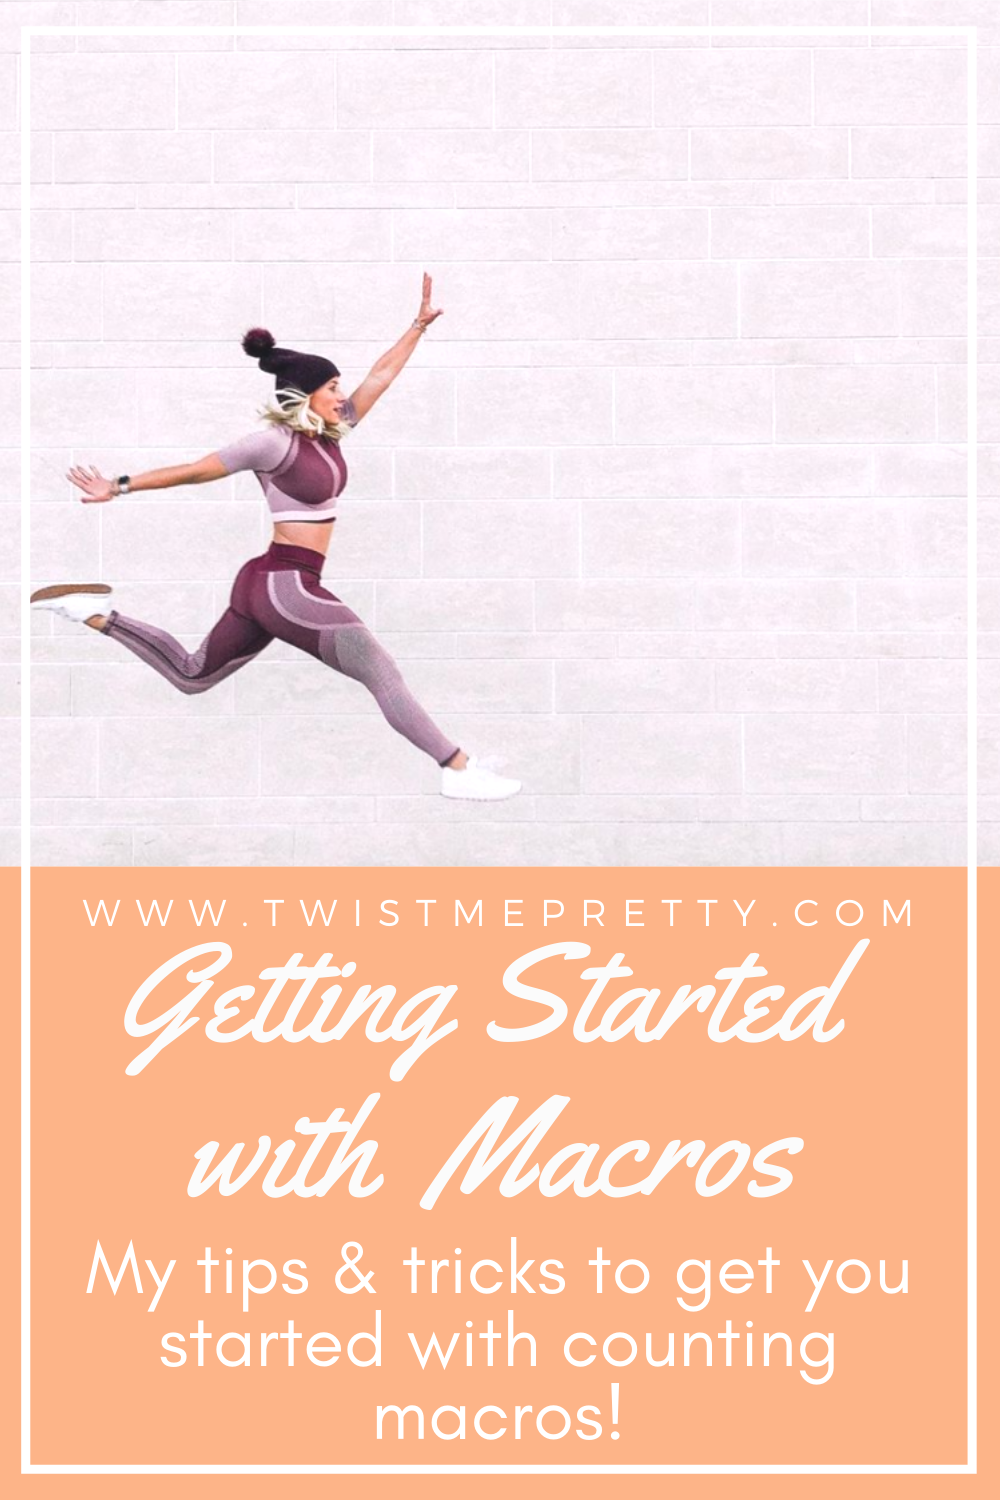 Getting started with macros. My tips & tricks to get you started with counting macros